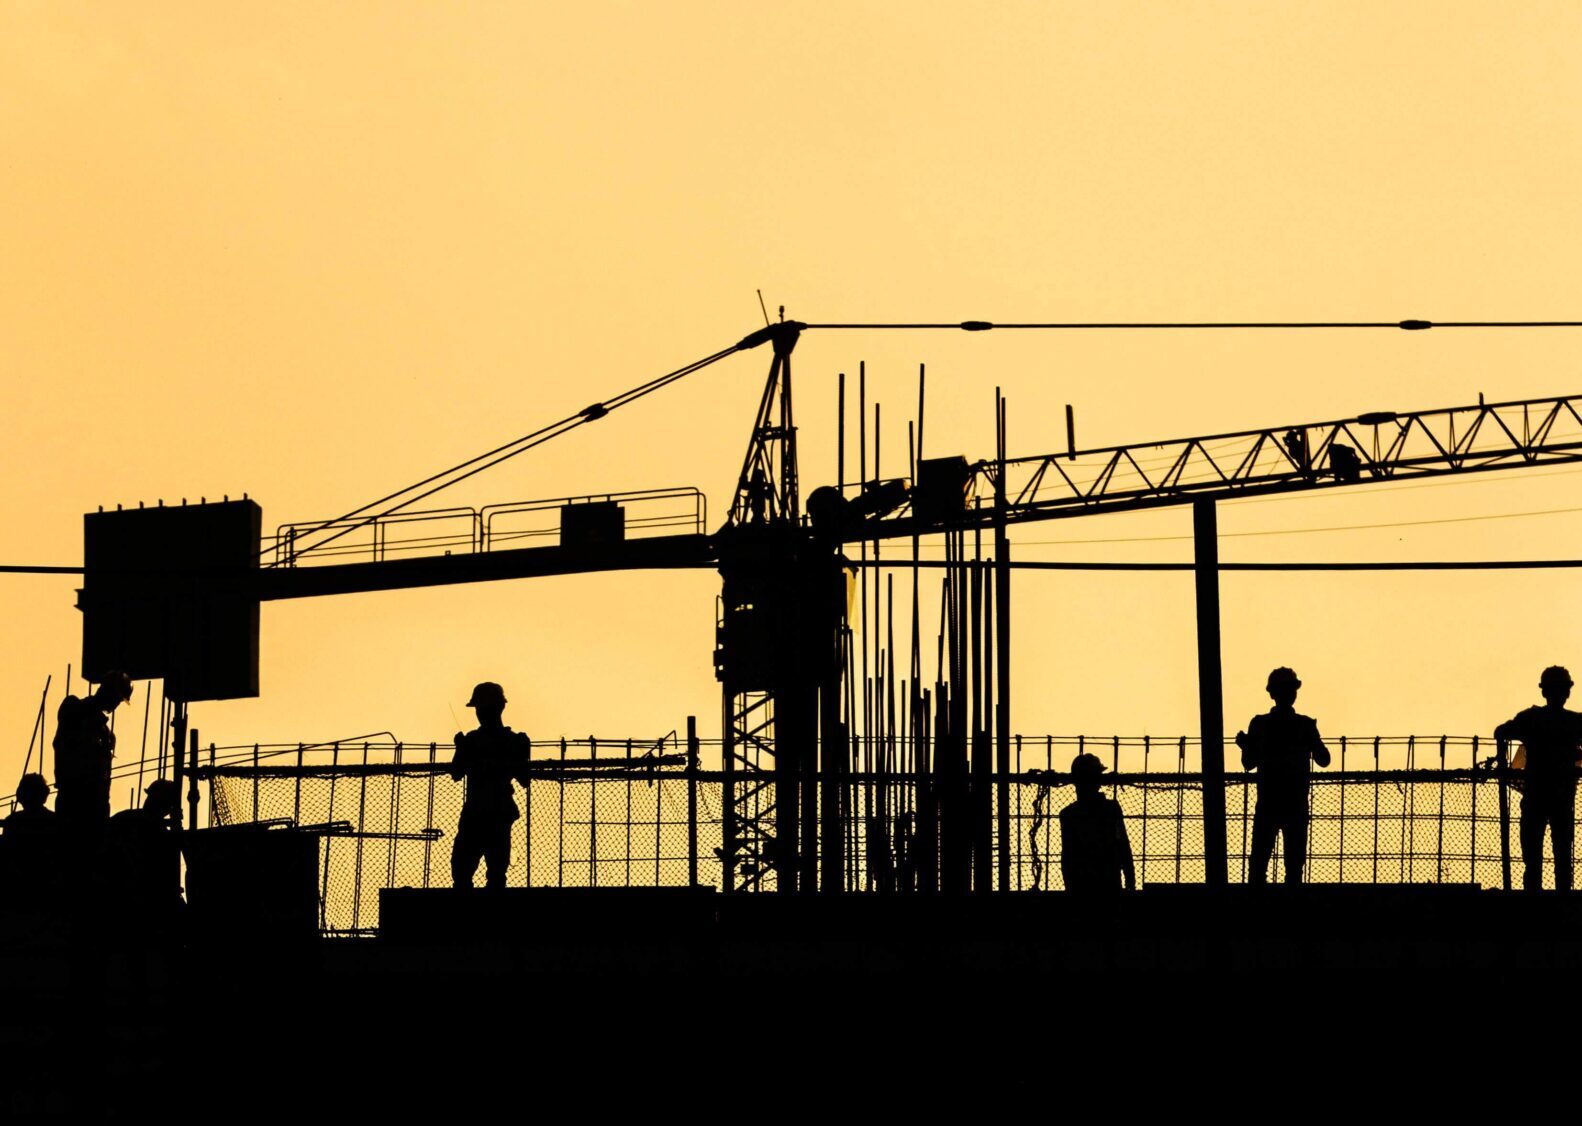 A silhouette of people at a construction site. There is a crane.